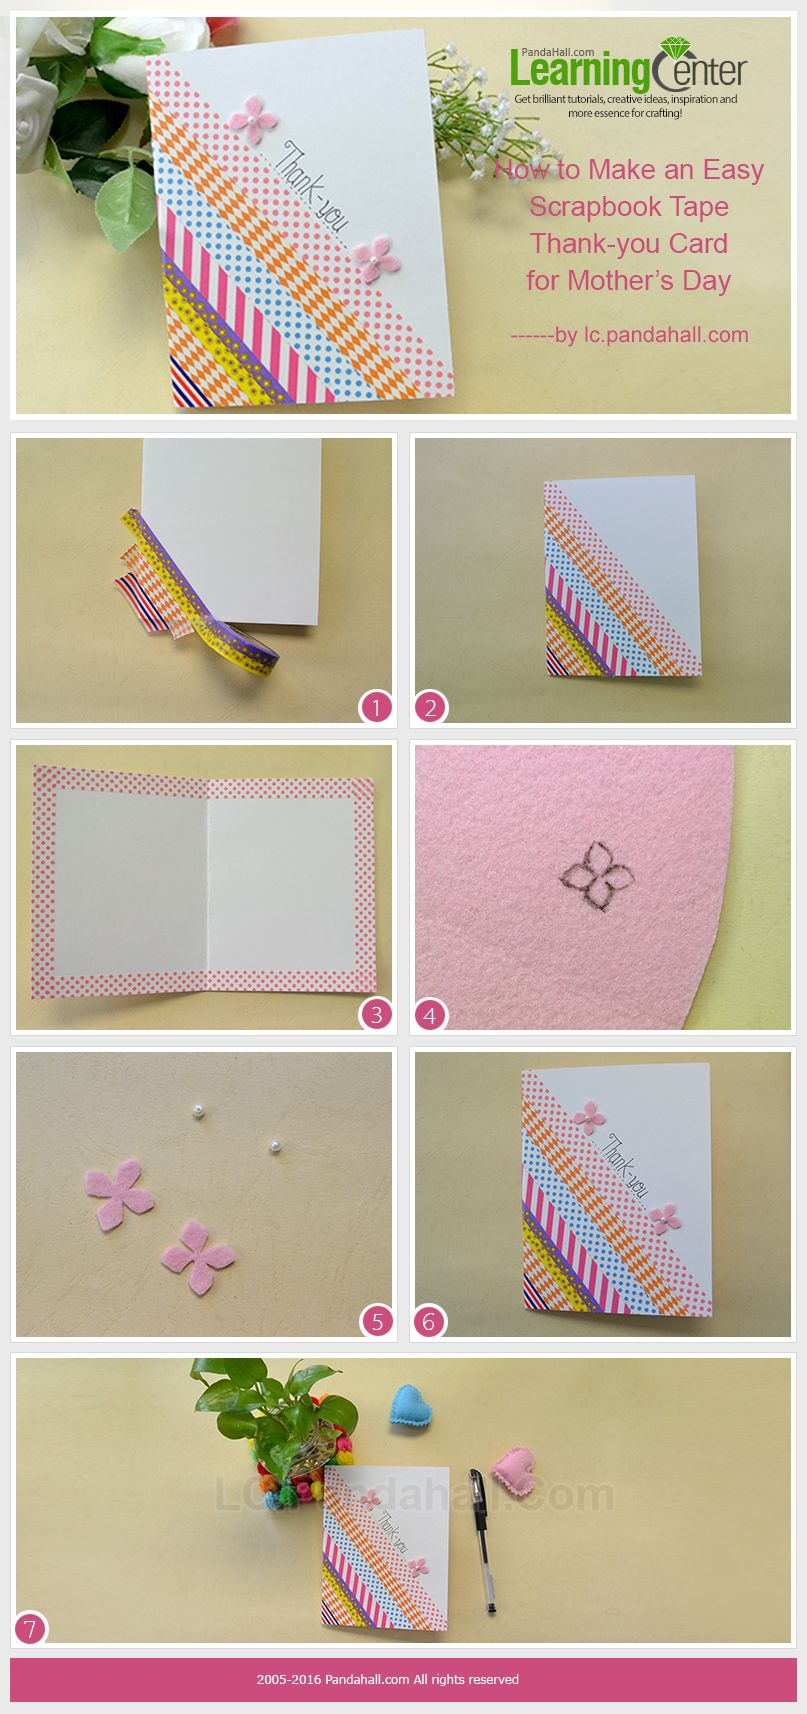 How to scrapbook easy - Tutorial On How To Make An Easy Scrapbook Tape Thank You Card For Mother S Day